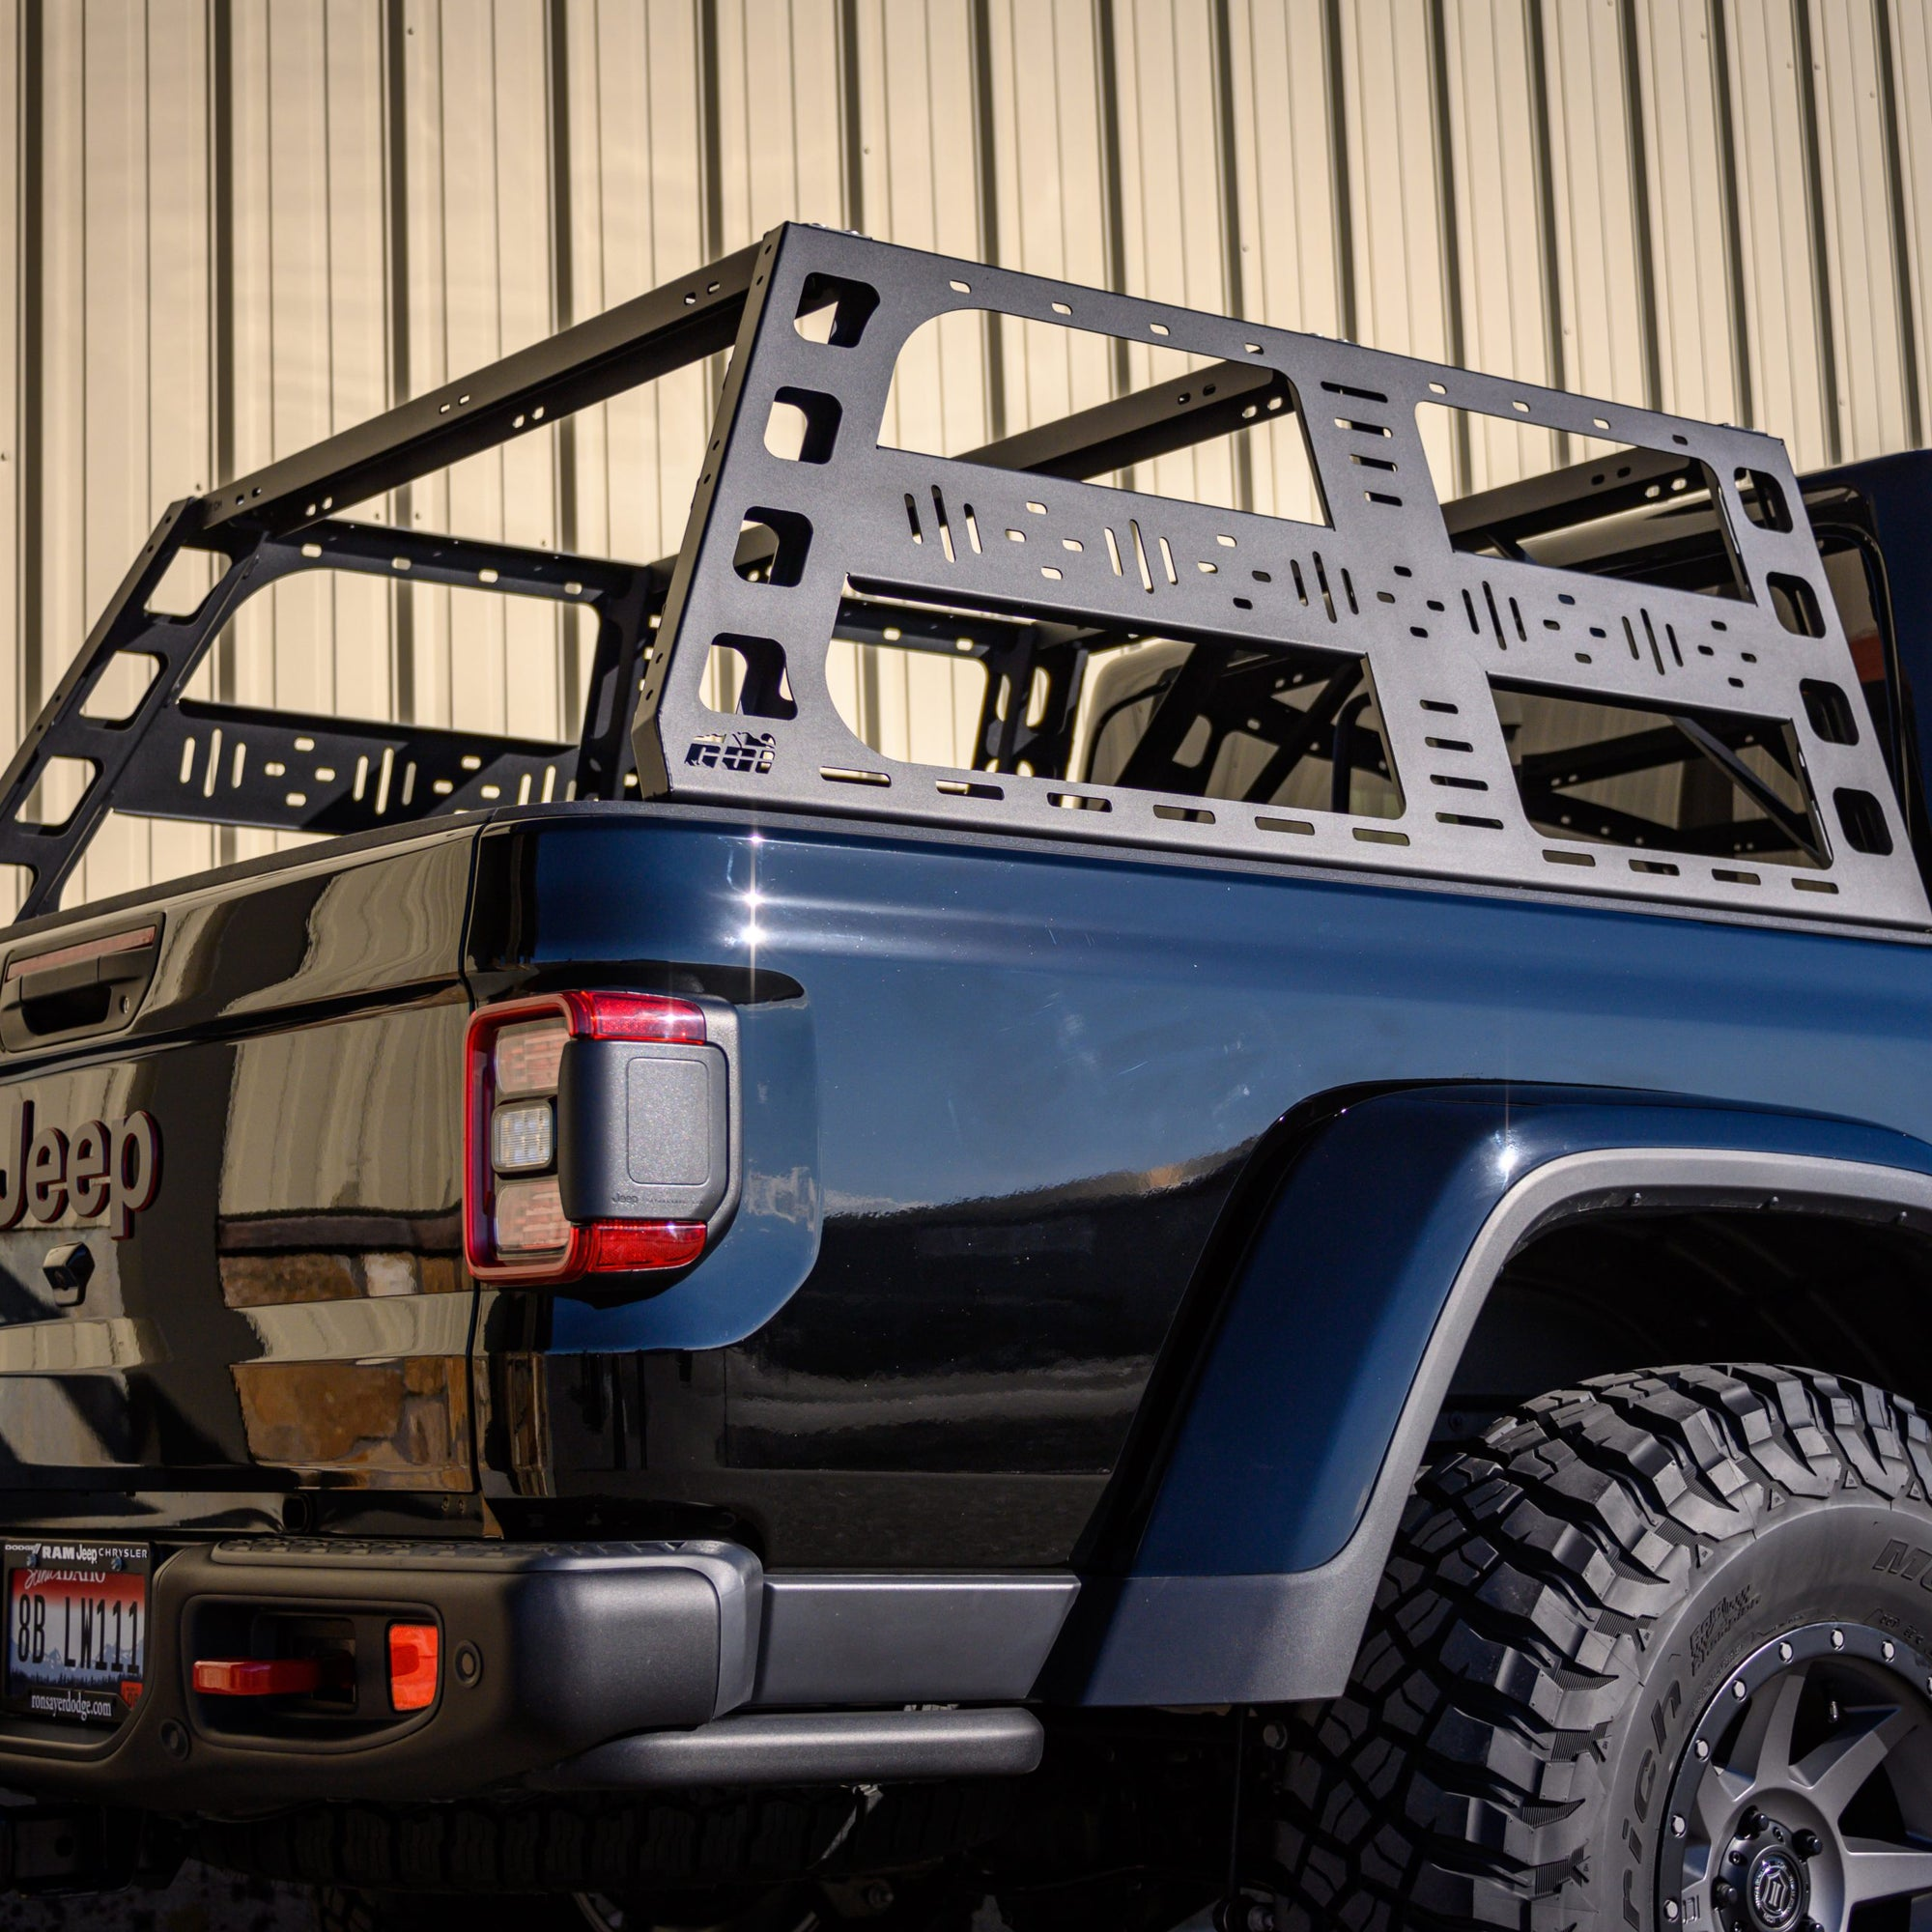 CBI Off Road Jeep Gladiator (JT) Cab Height Bed Rack